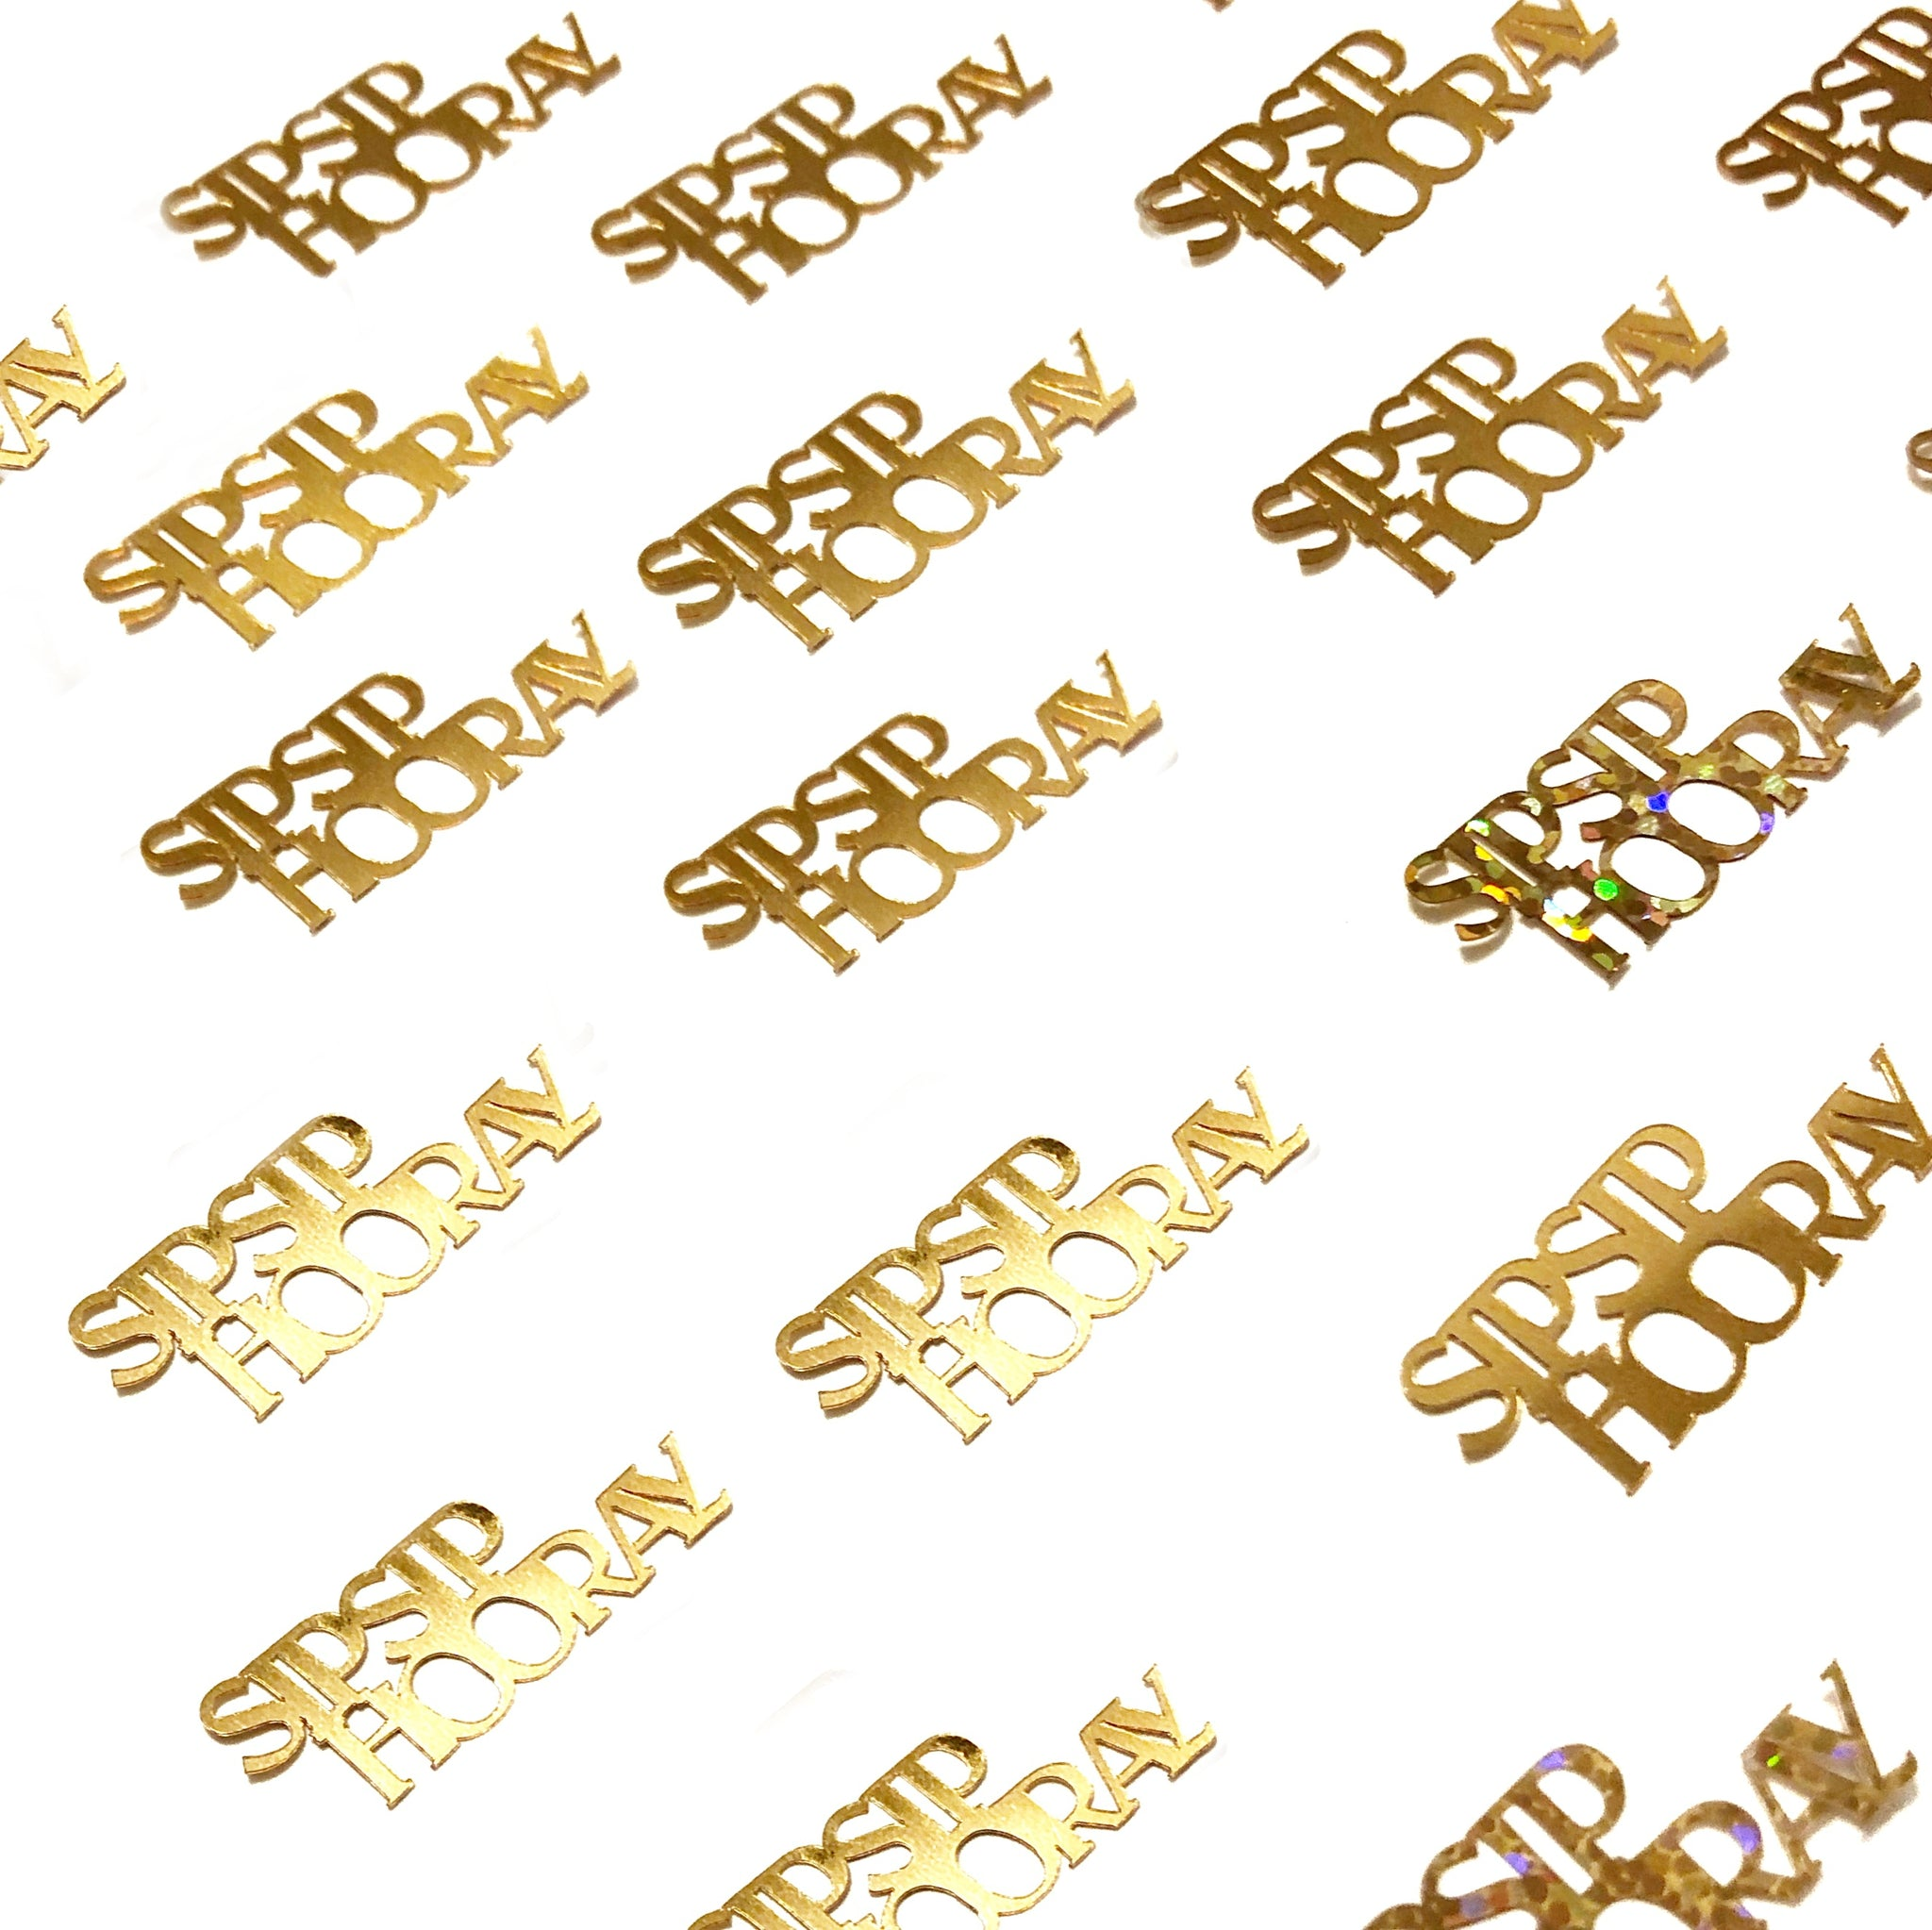 Sip Sip Hooray gold table confetti.